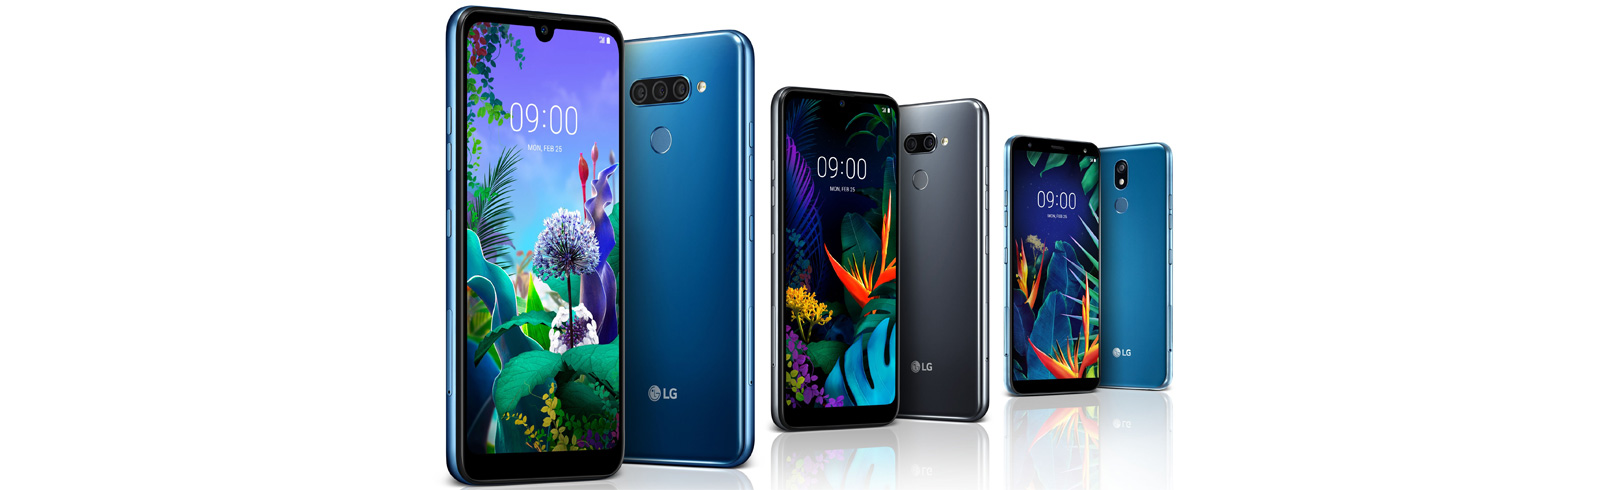 LG unveils the LG Q60, LG K50 and LG K40, will be showcased at the 2019 MWC